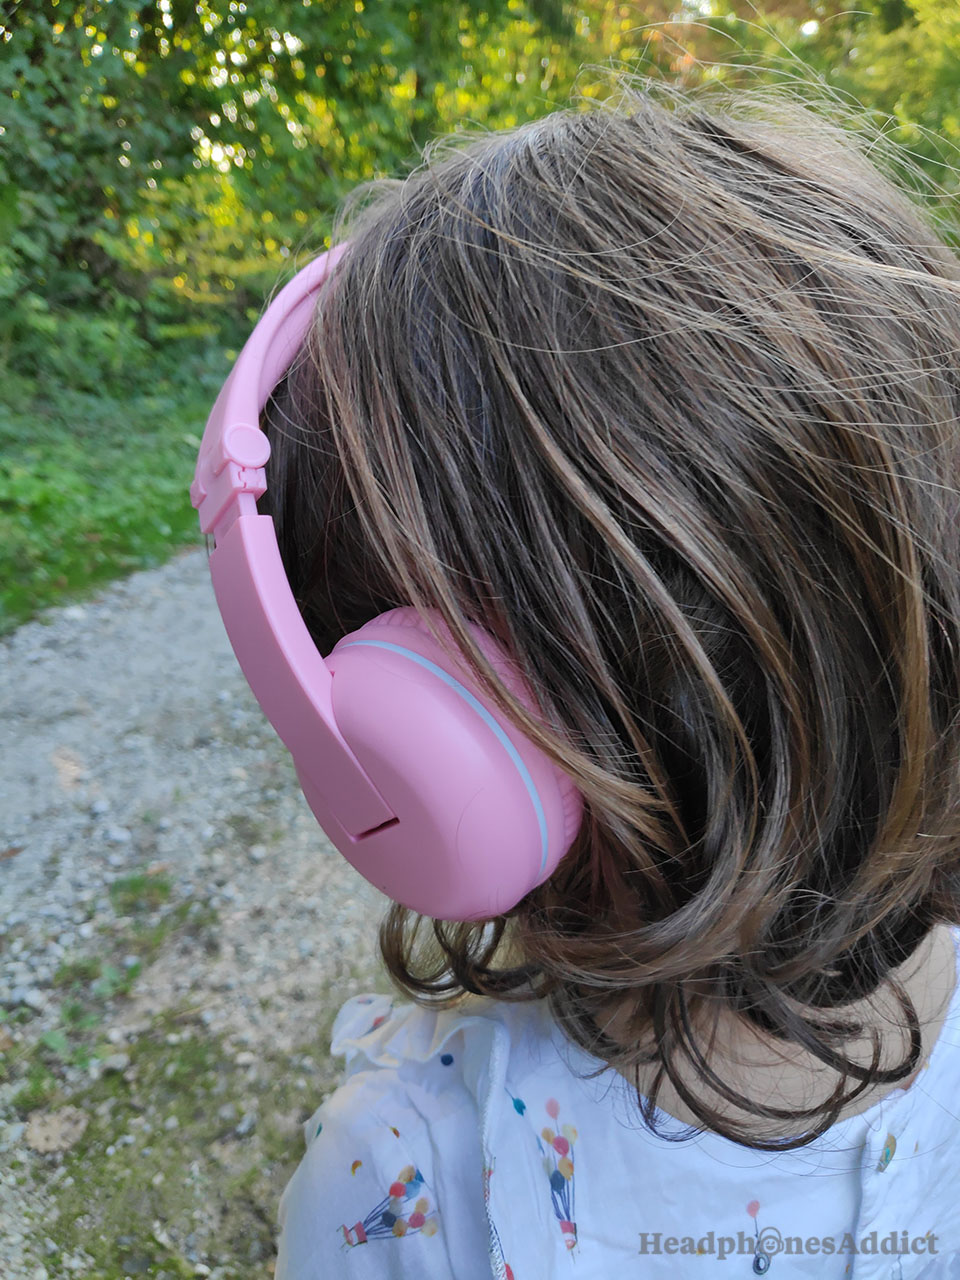 BuddyPhones Play kids headphones side